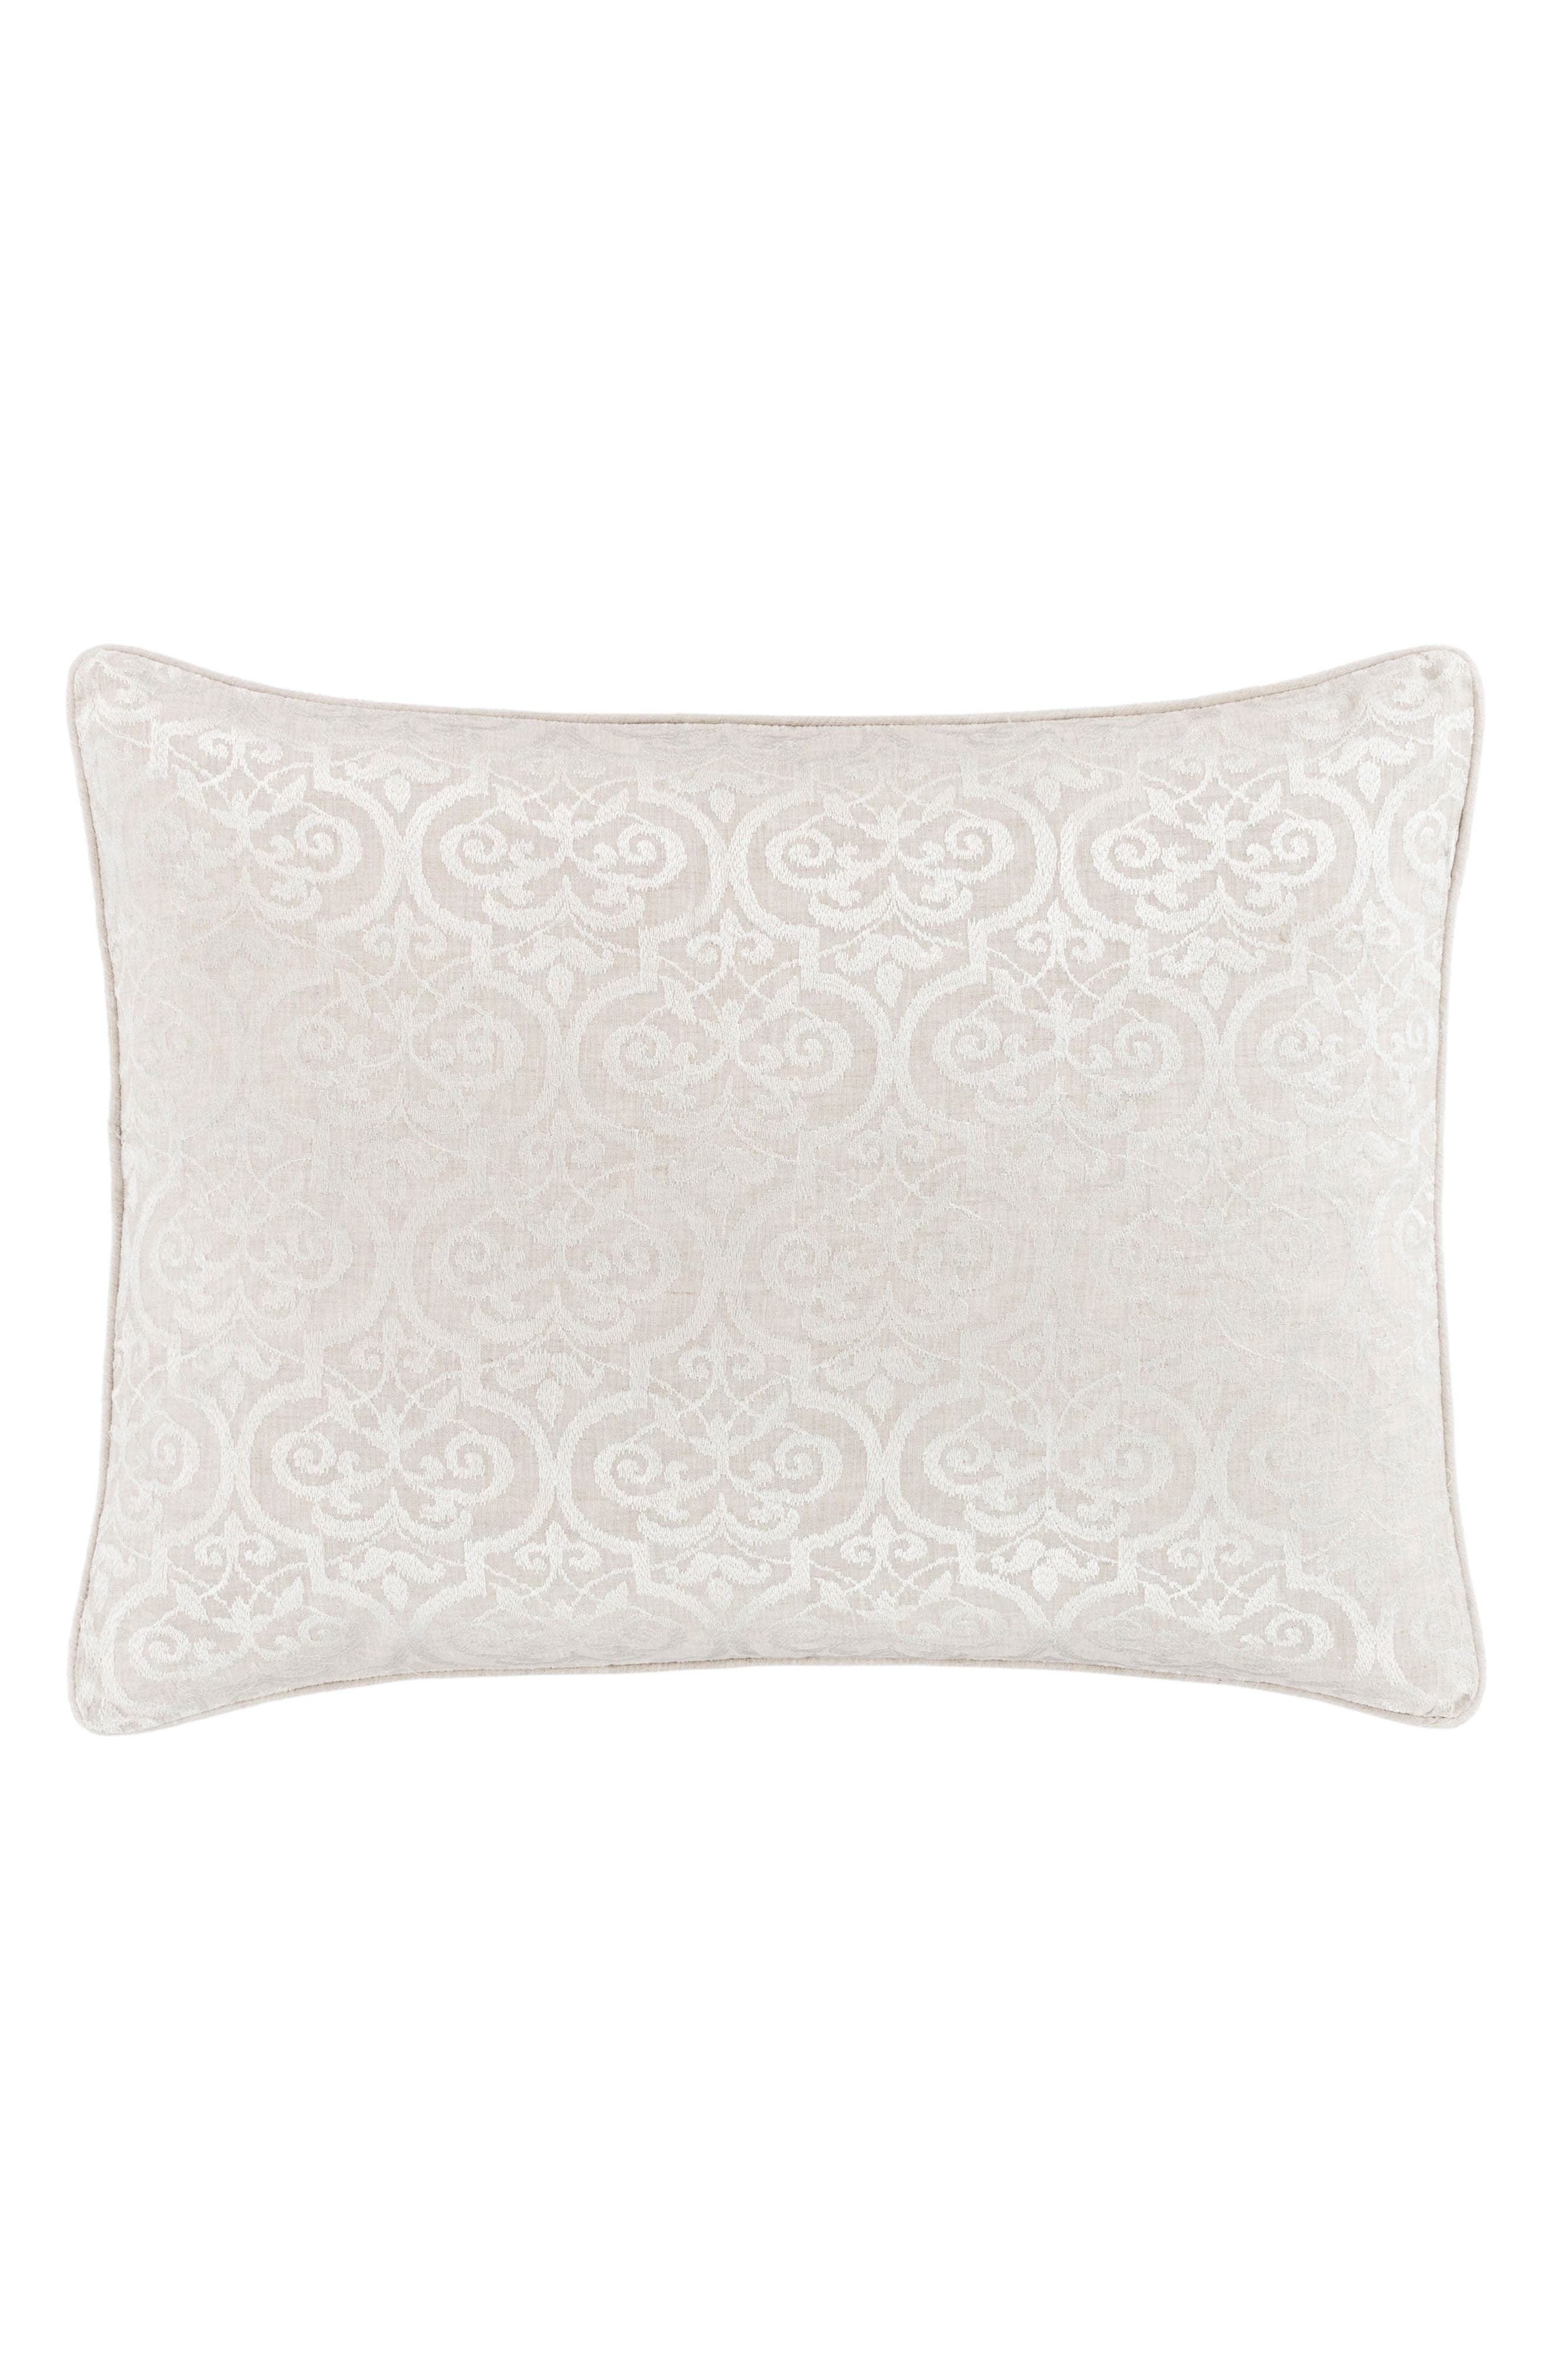 Gwendolyn Embroidered Linen Sham,                             Main thumbnail 1, color,                             100